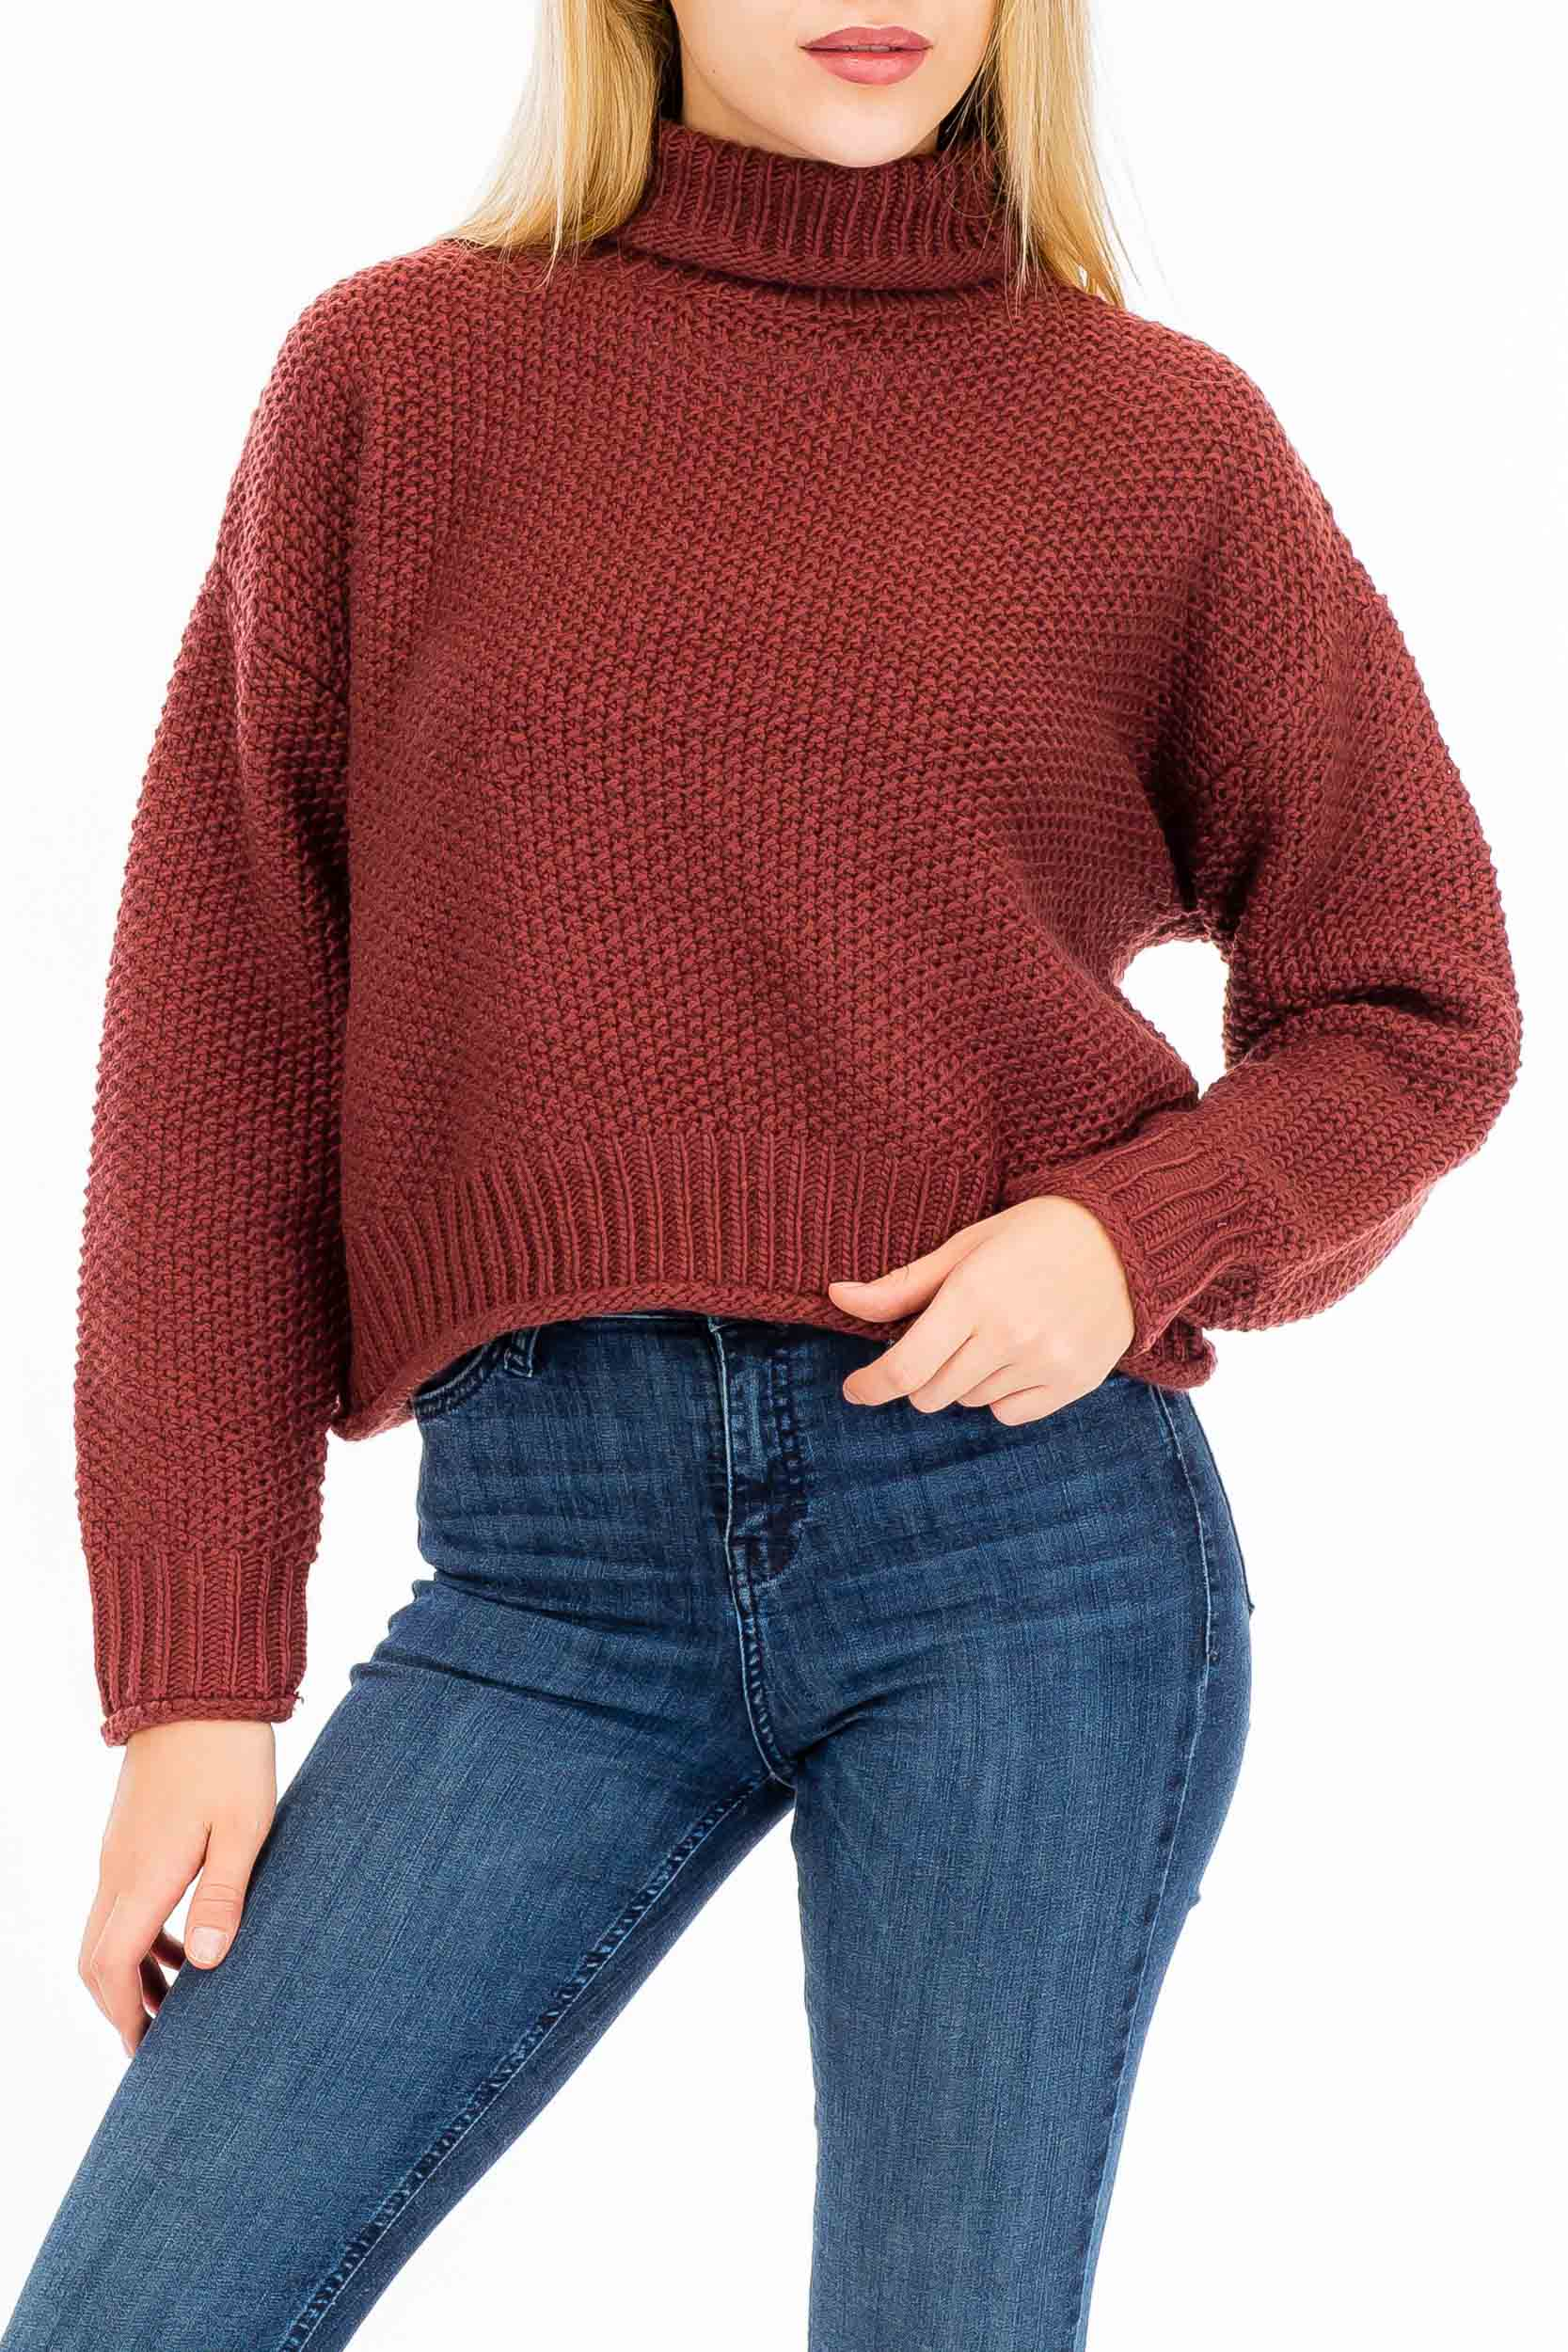 Rolled Hem Tight Knit Semi Crop Turtle Neck Sleeve Sweater